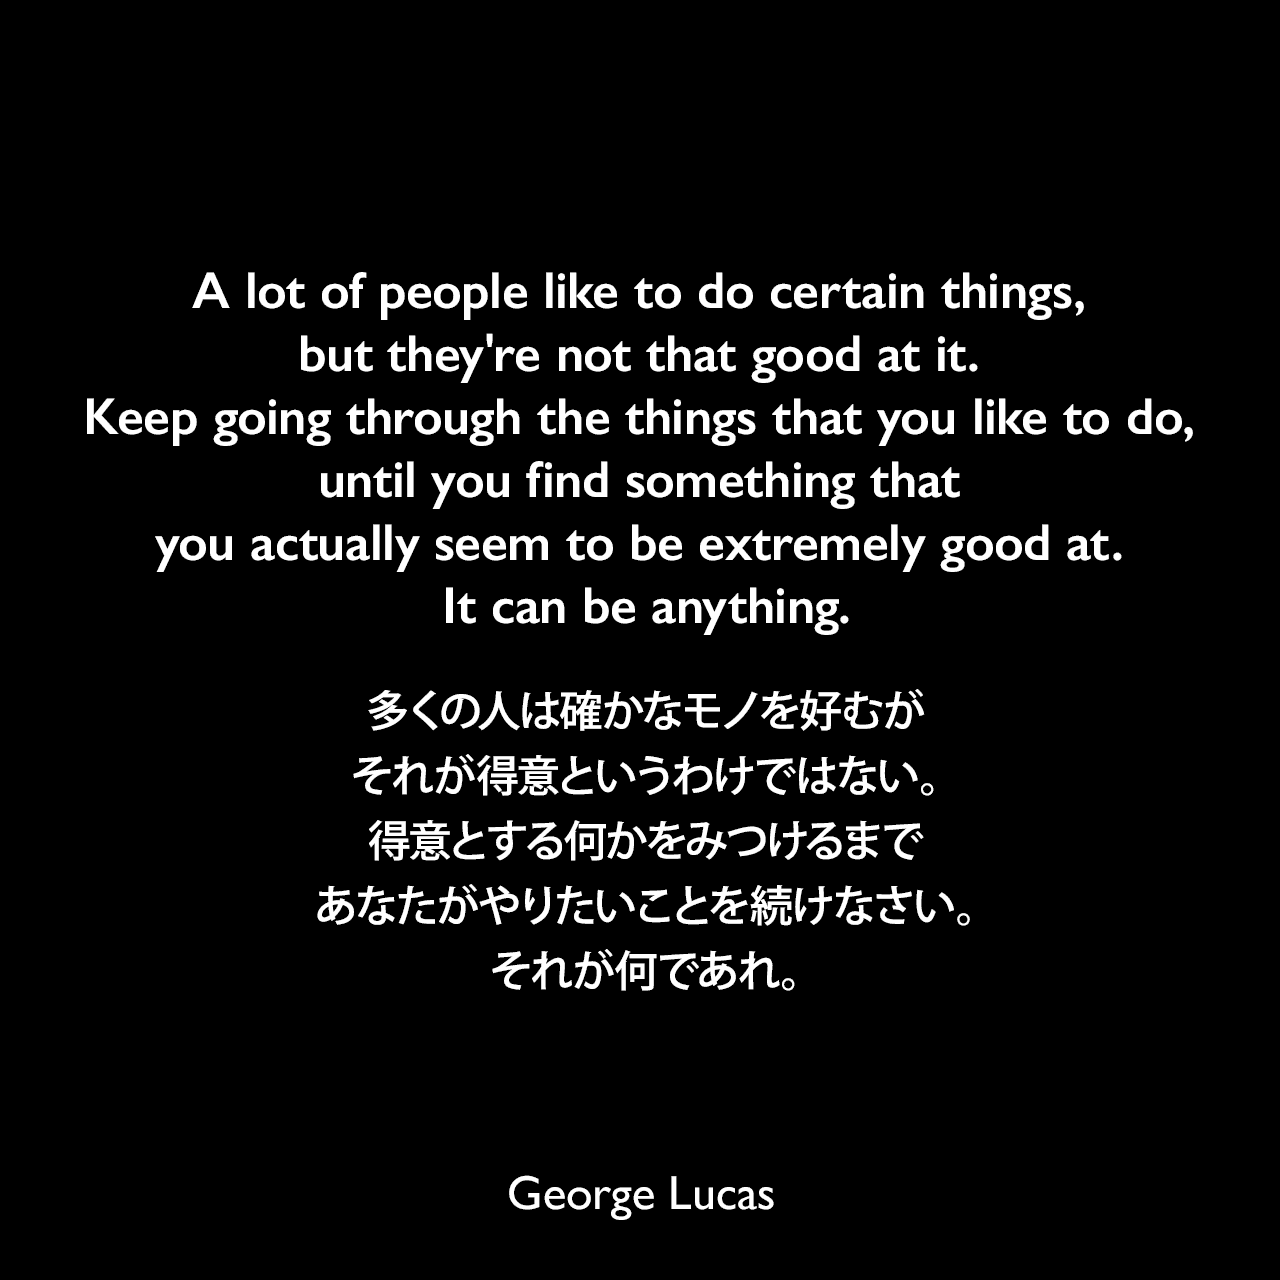 A lot of people like to do certain things, but they're not that good at it. Keep going through the things that you like to do, until you find something that you actually seem to be extremely good at. It can be anything.多くの人は確かなモノを好むが、それが得意というわけではない。得意とする何かをみつけるまであなたがやりたいことを続けなさい。それが何であれ。George Lucas